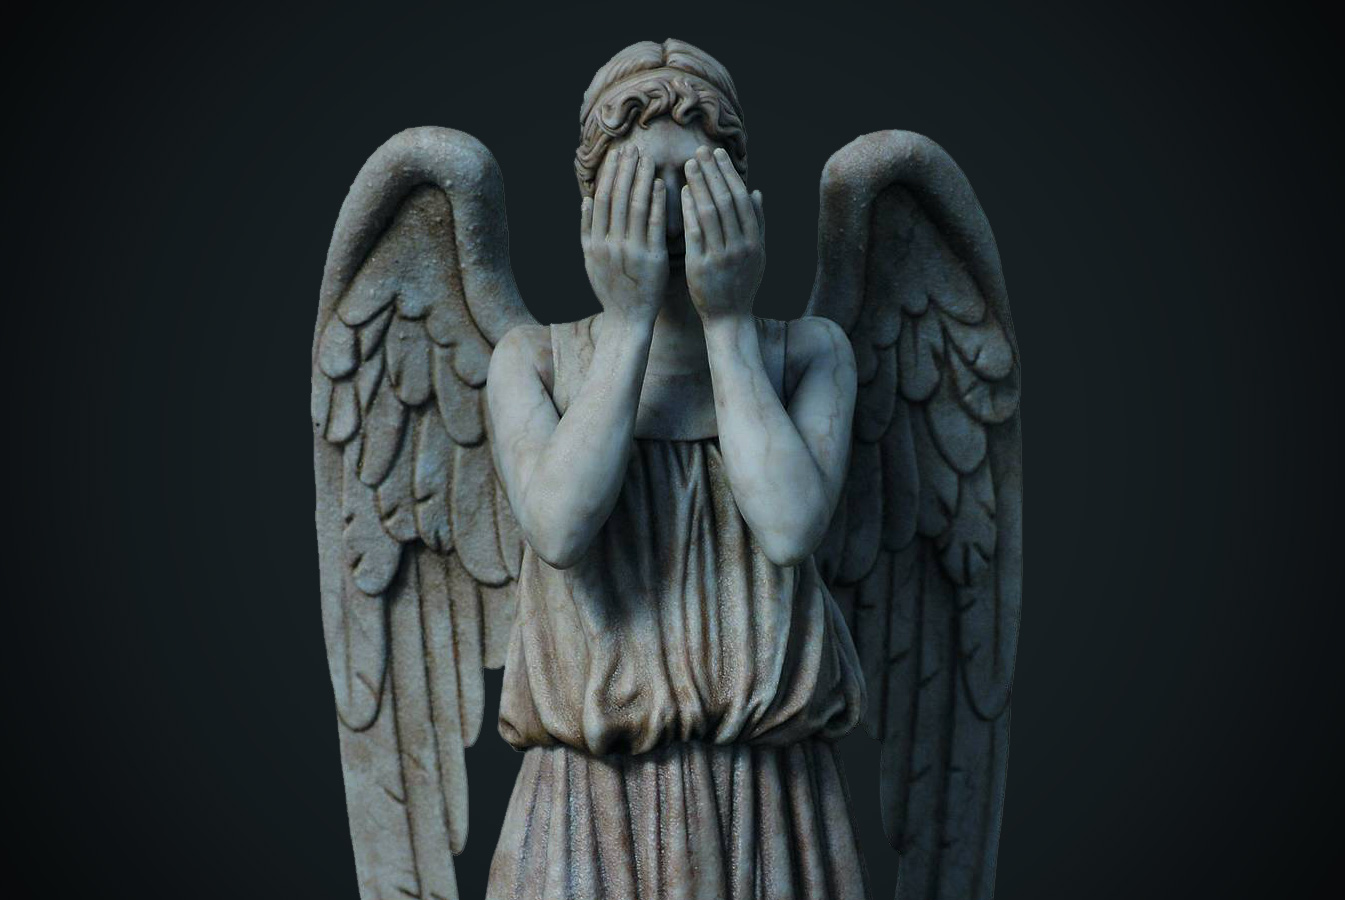 CIAu0027s Weeping Angel Provides A Stark Warning To Device Manufacturers On IoT  Security   IT SECURITY GURU